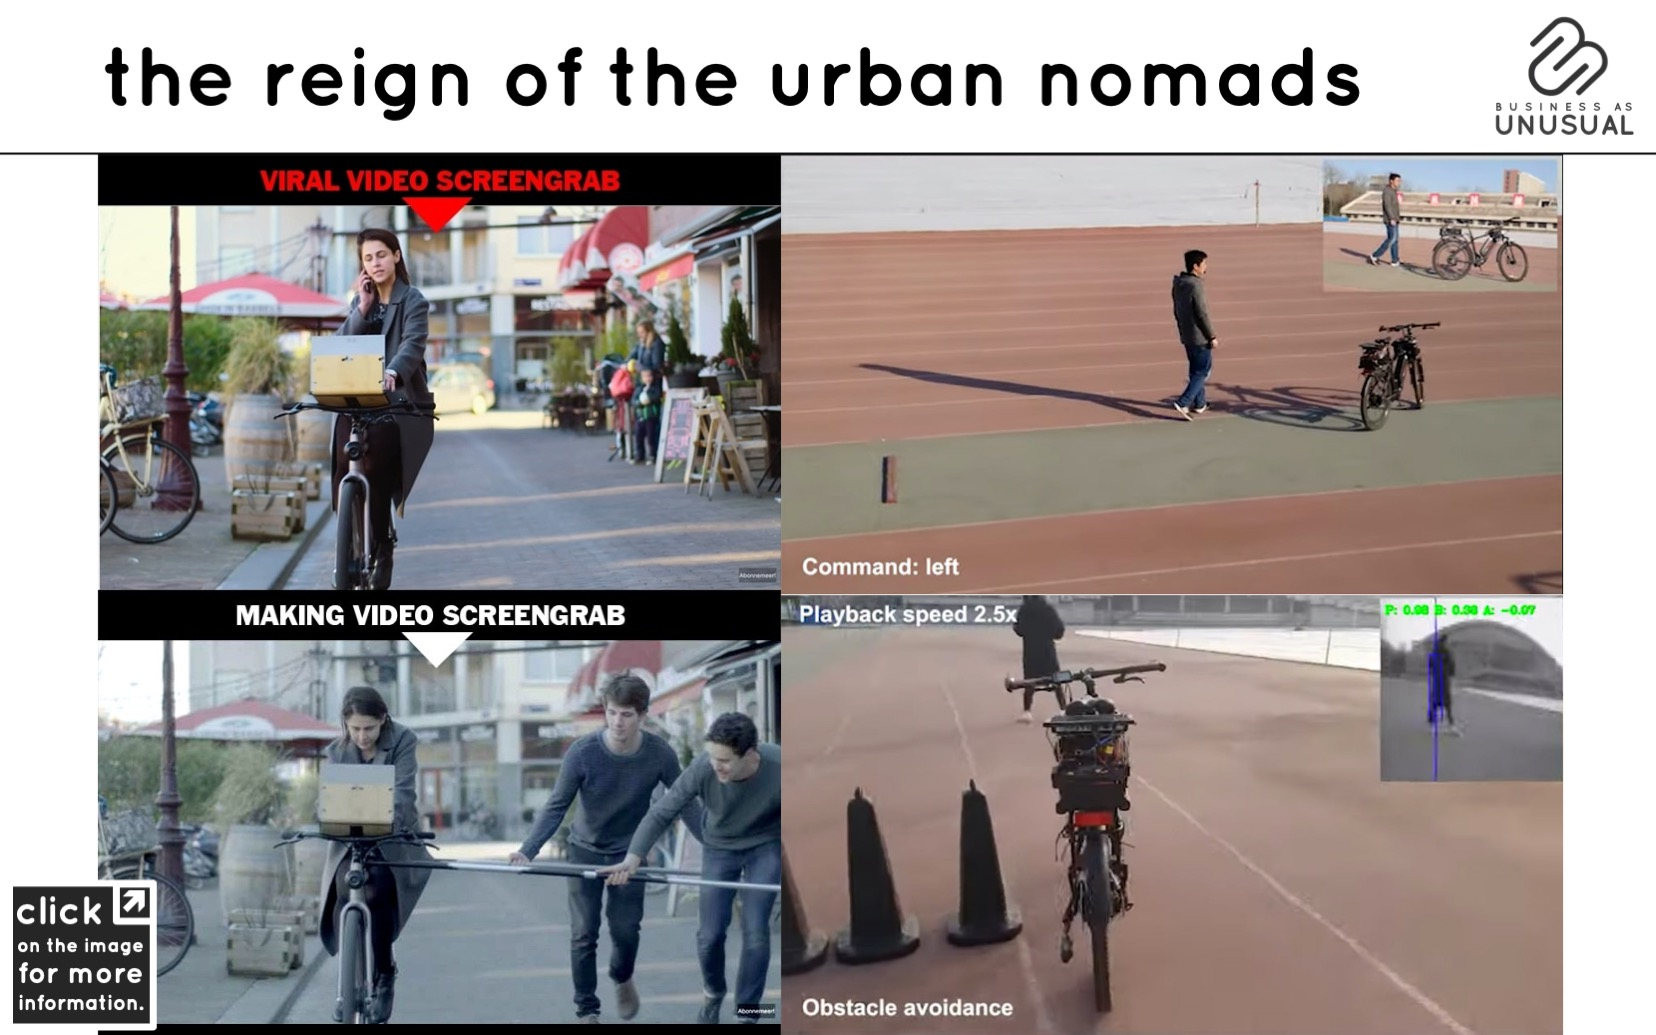 The Reign of the Urban Nomads - Self-Driving Bicycle